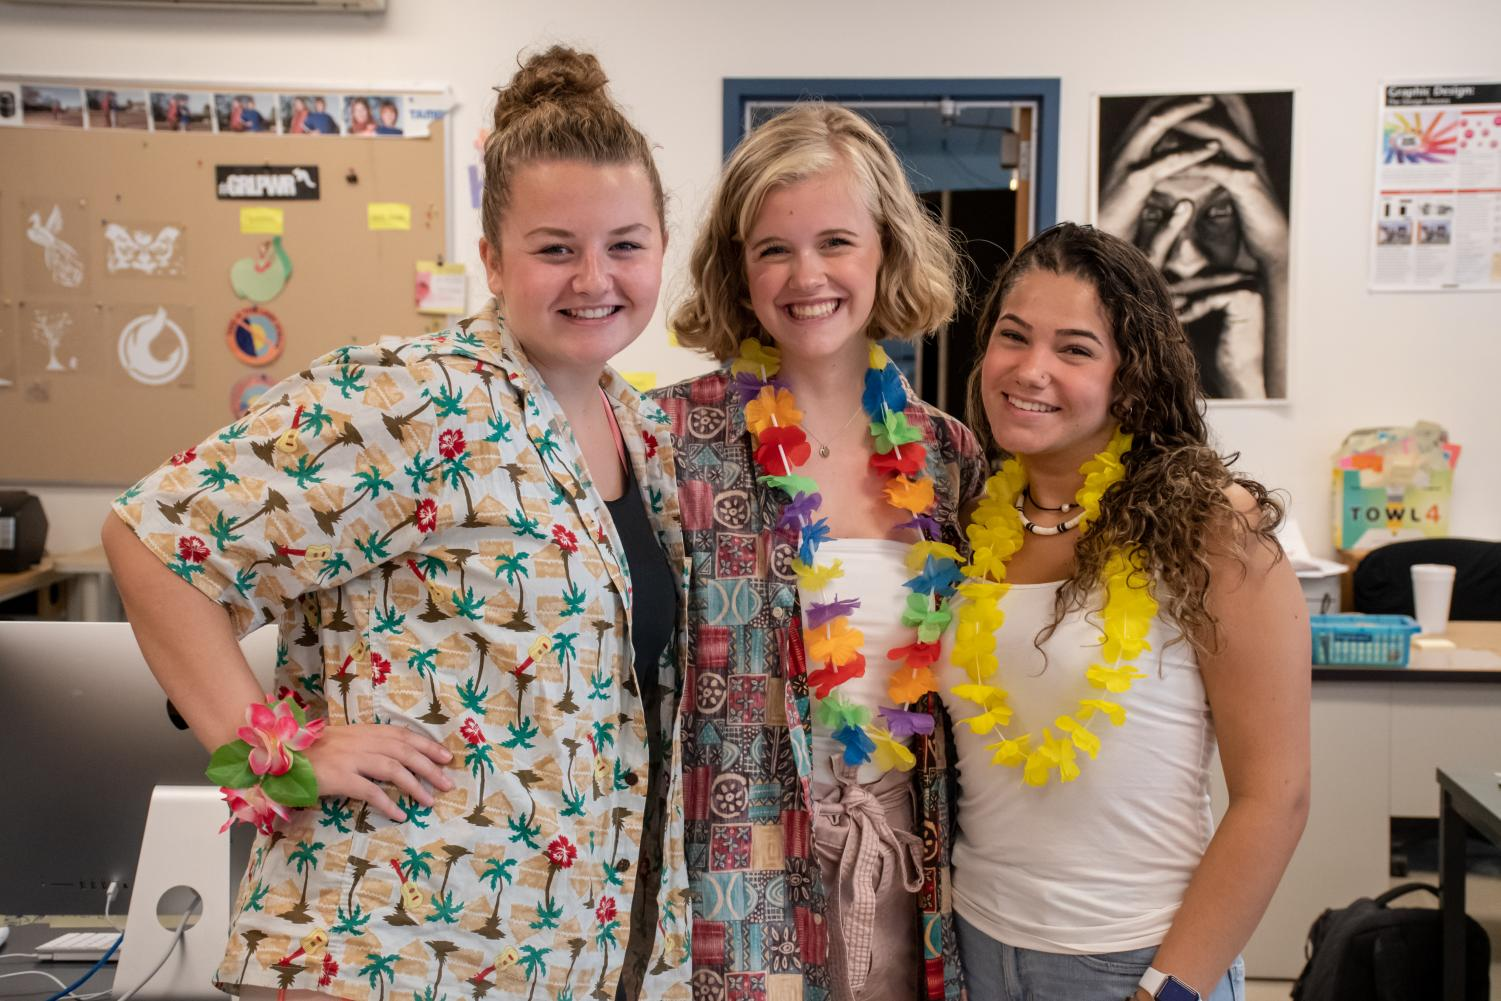 %5BFrom+left+to+right%5D+seniors+Madelyn+Kostiw%2C+Elizabeth+Webb+and+Emily+Pinho+dressed+up+for+beach+day.+%22It+adds+a+fun+theme+to+a+basic+day%2C+and+it%27s+fun+to+dress+up+with+everyone+else+and+add+school+spirit%2C%22+Kostiw+said.